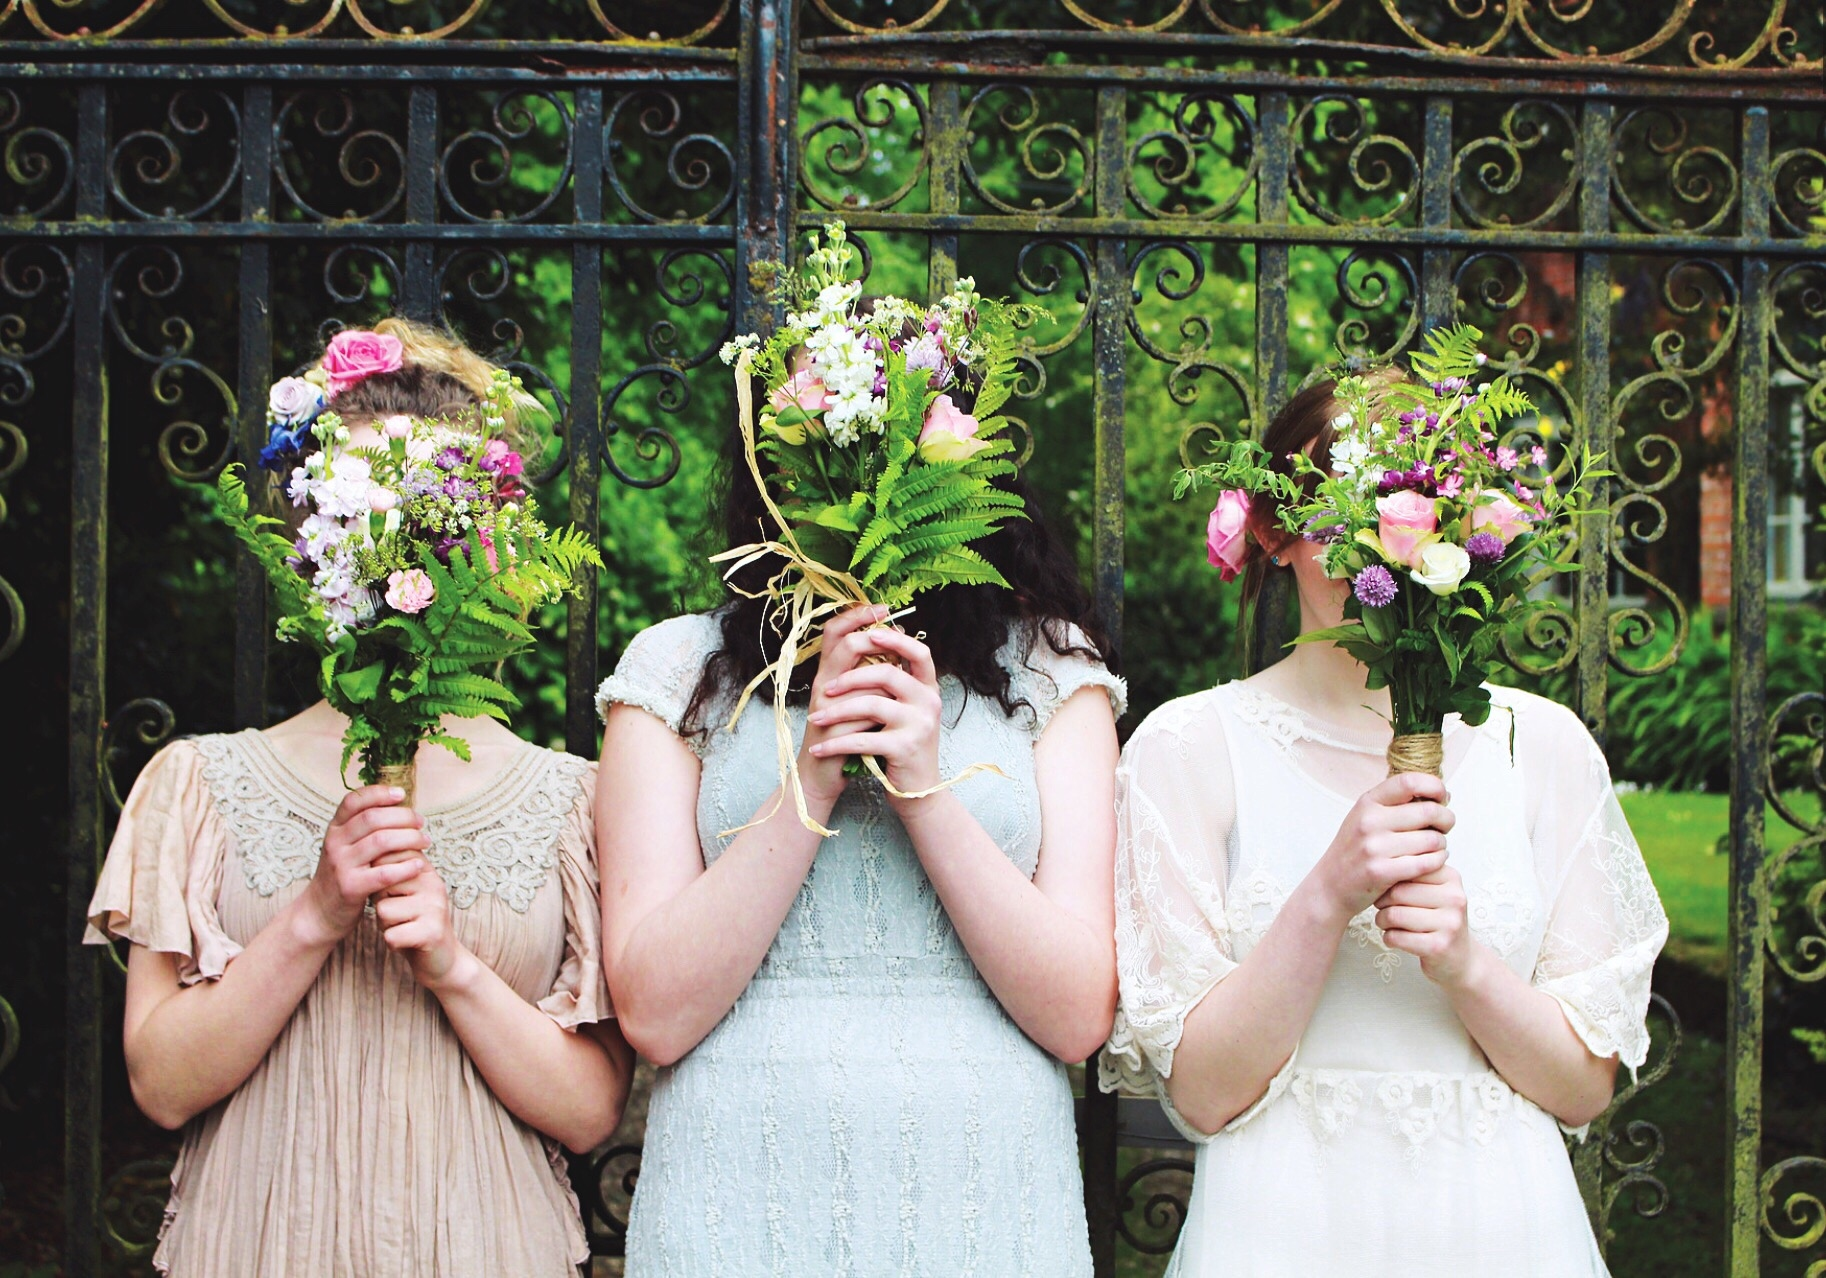 Holly Curtis and her bridesmaids